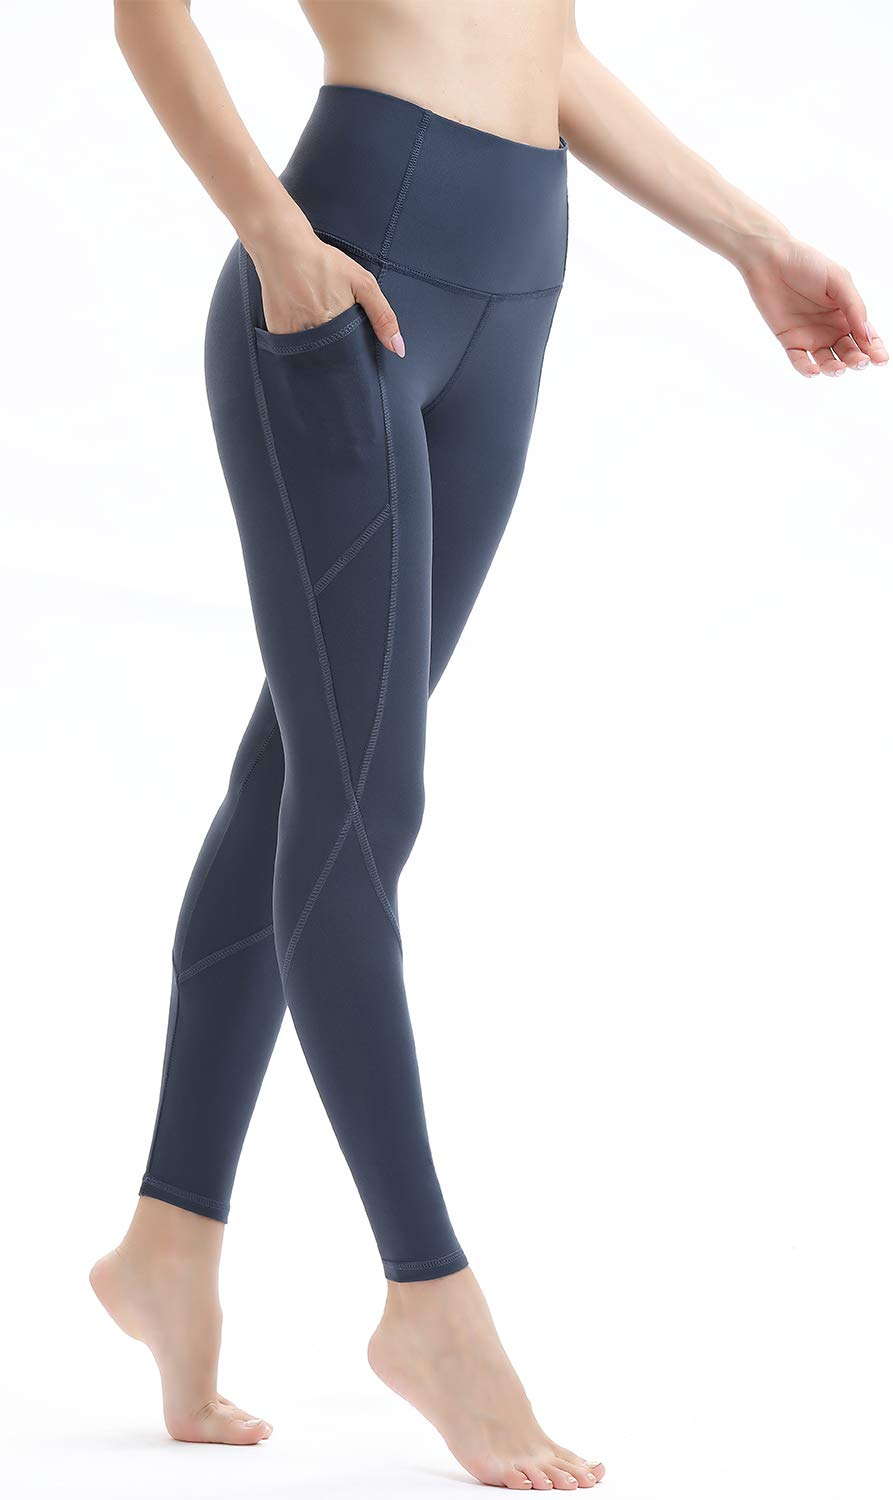 AFITNE Yoga Pants for Women High Waisted Tummy Control Leggings with Pockets Workout Yoga Pants Navy - XS